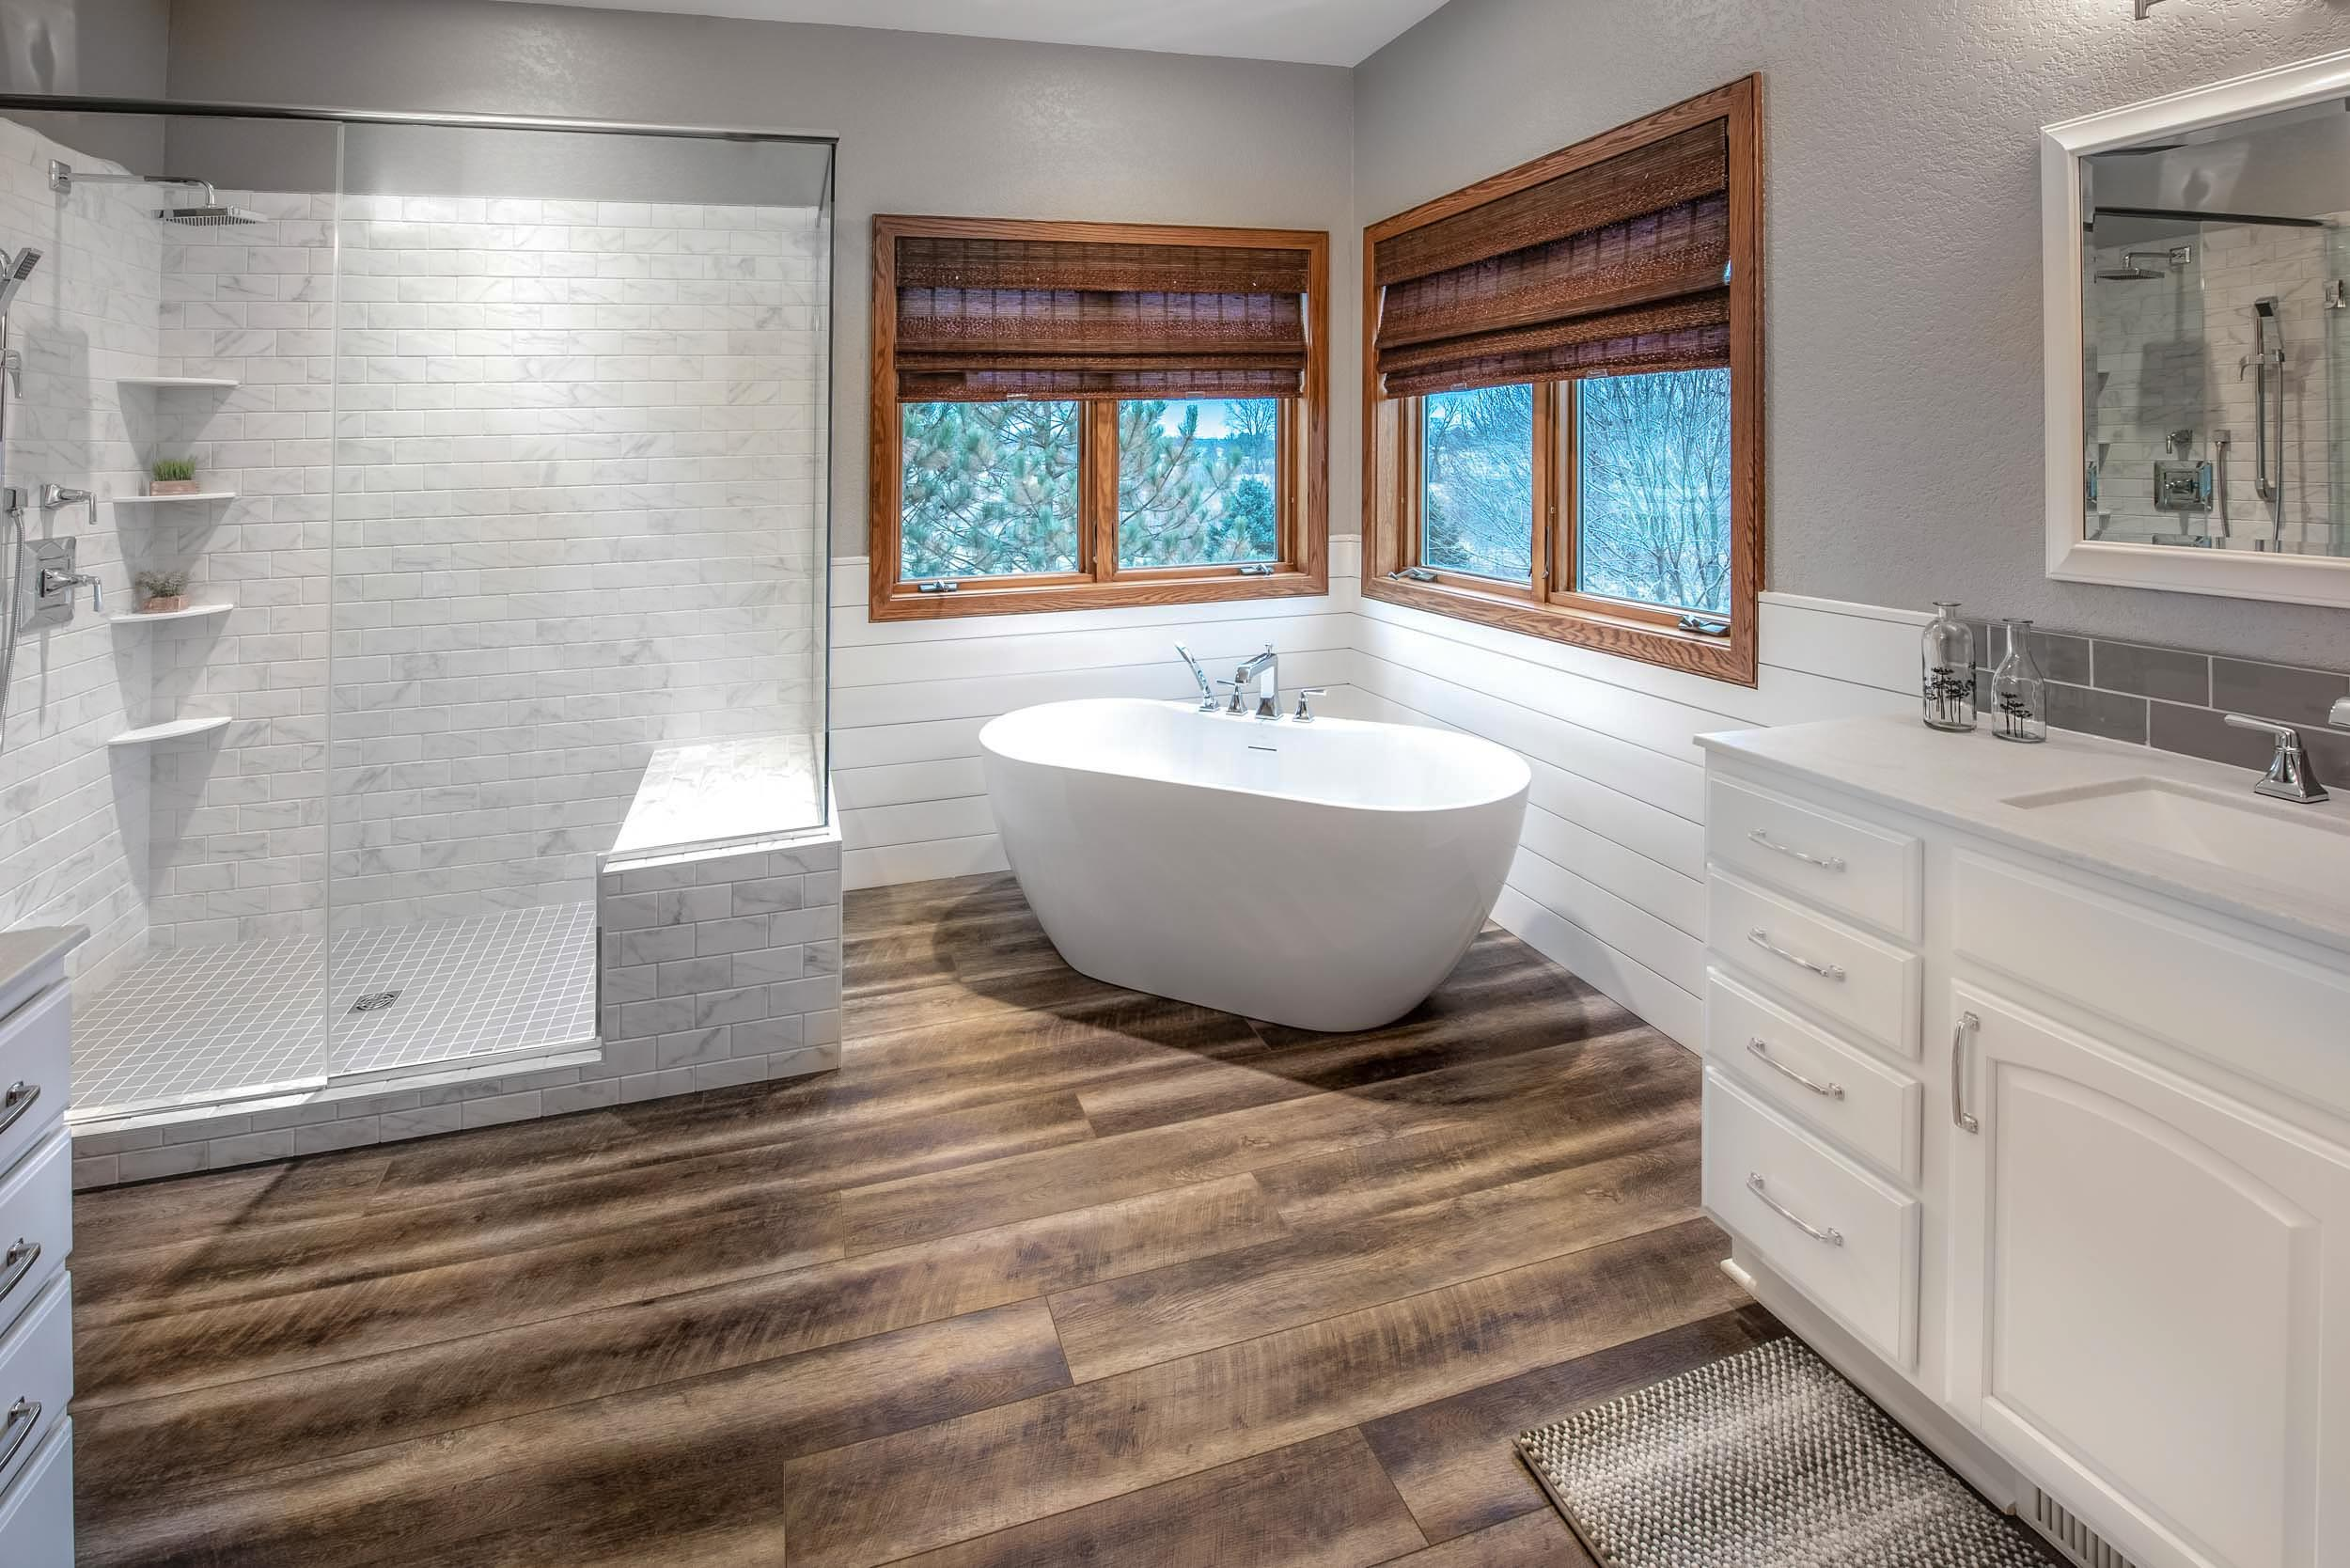 A Master Bathroom Remodel With Walk-In Shower and Soaking Tub